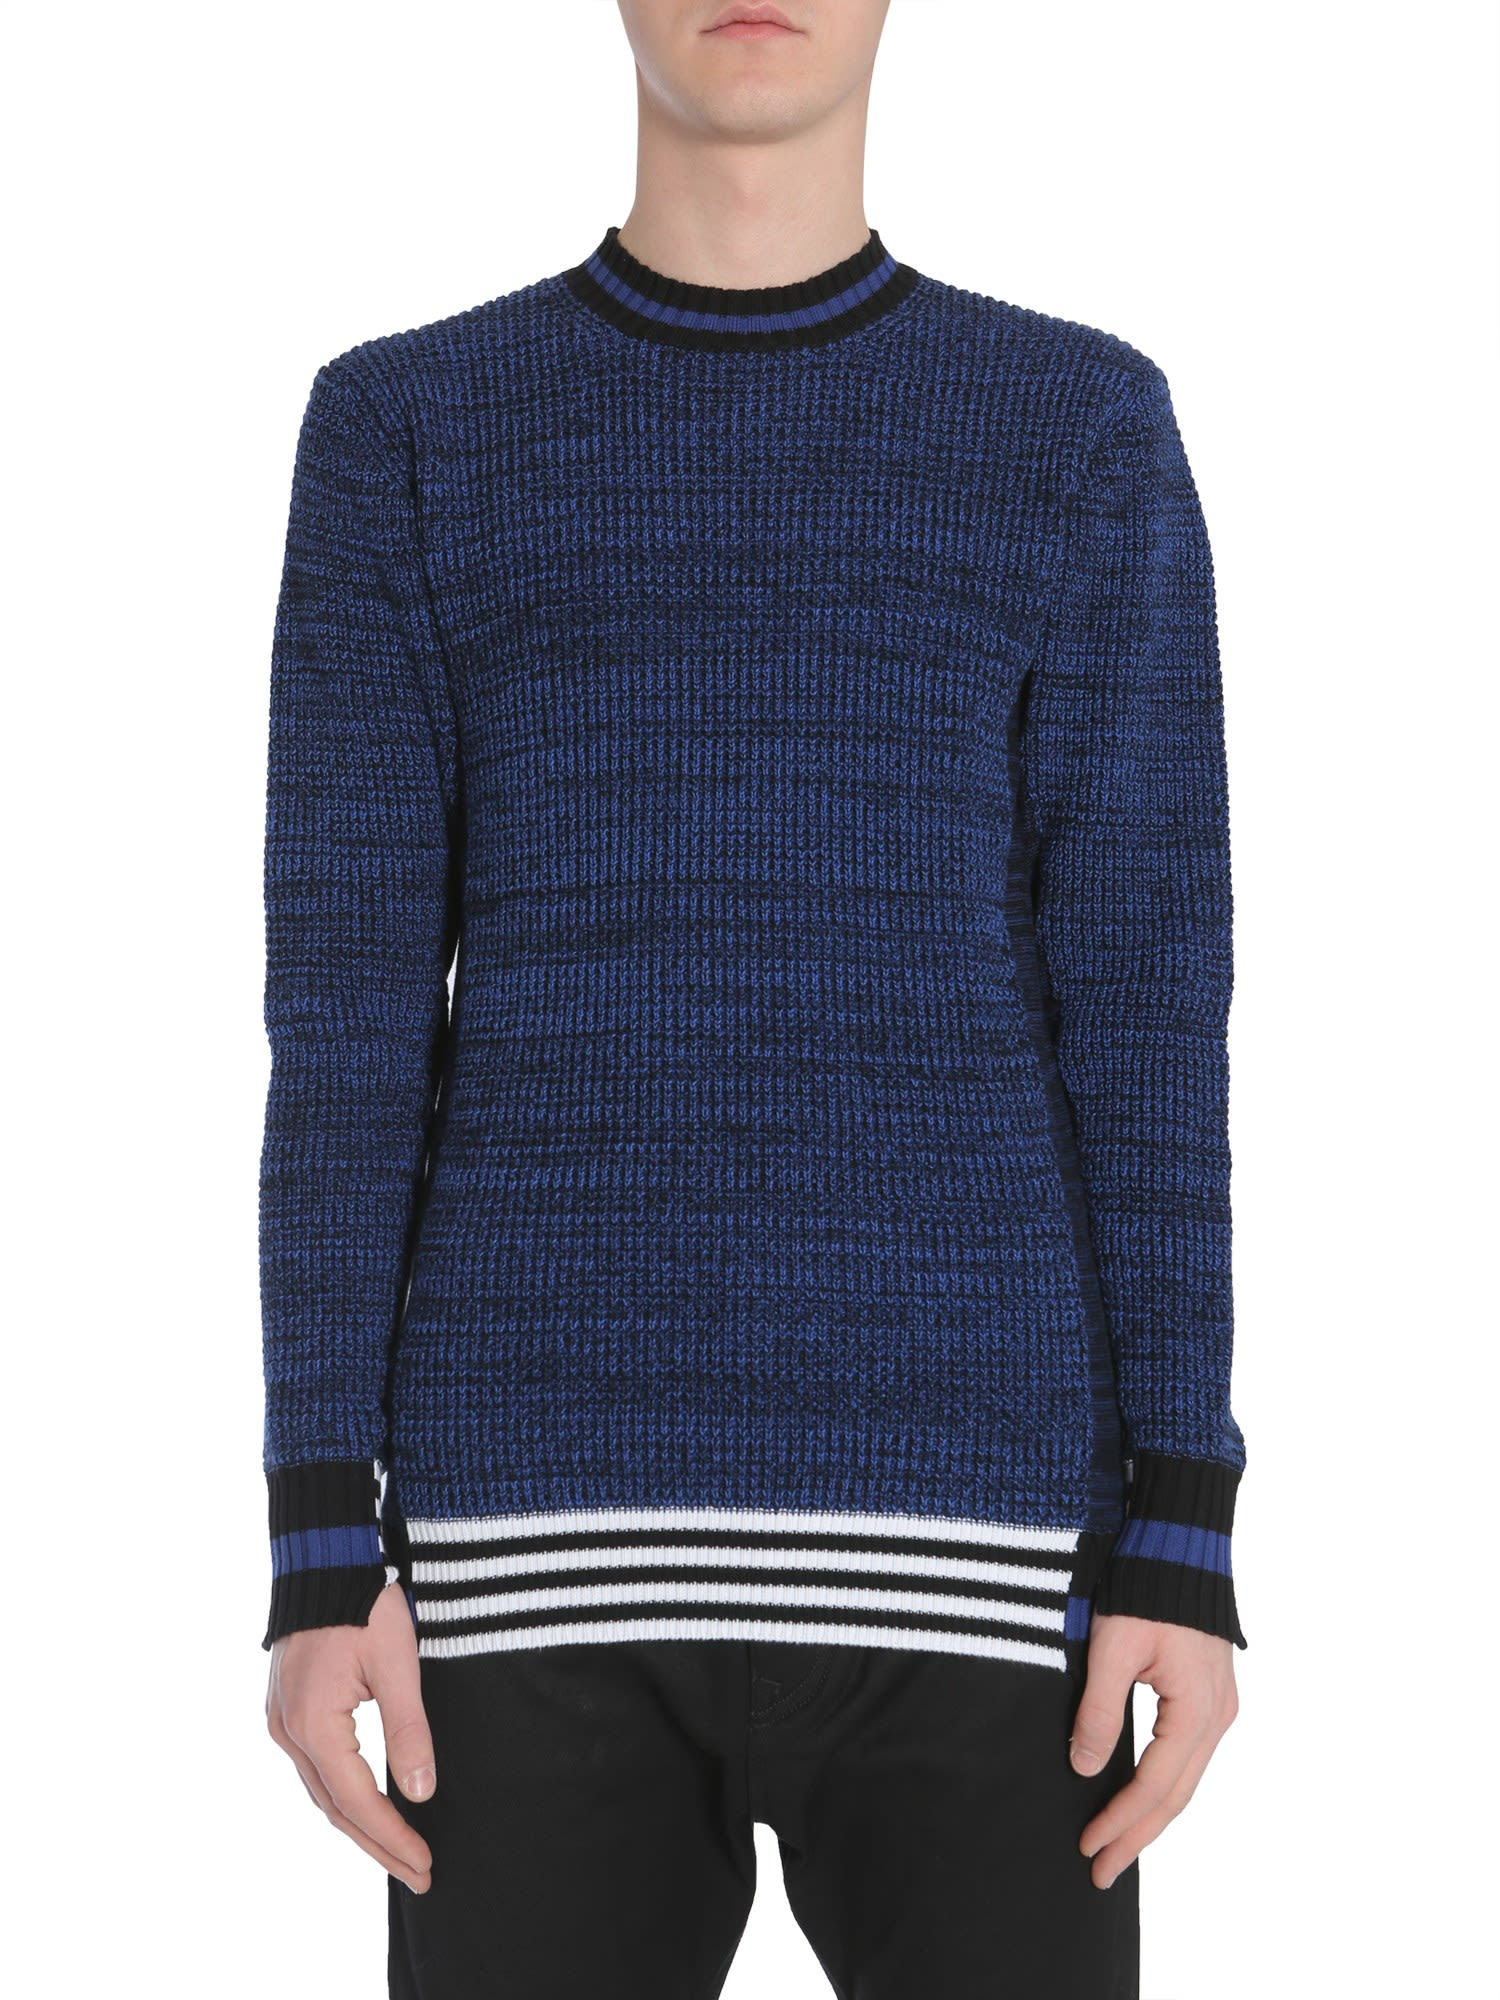 Kollay Sweater